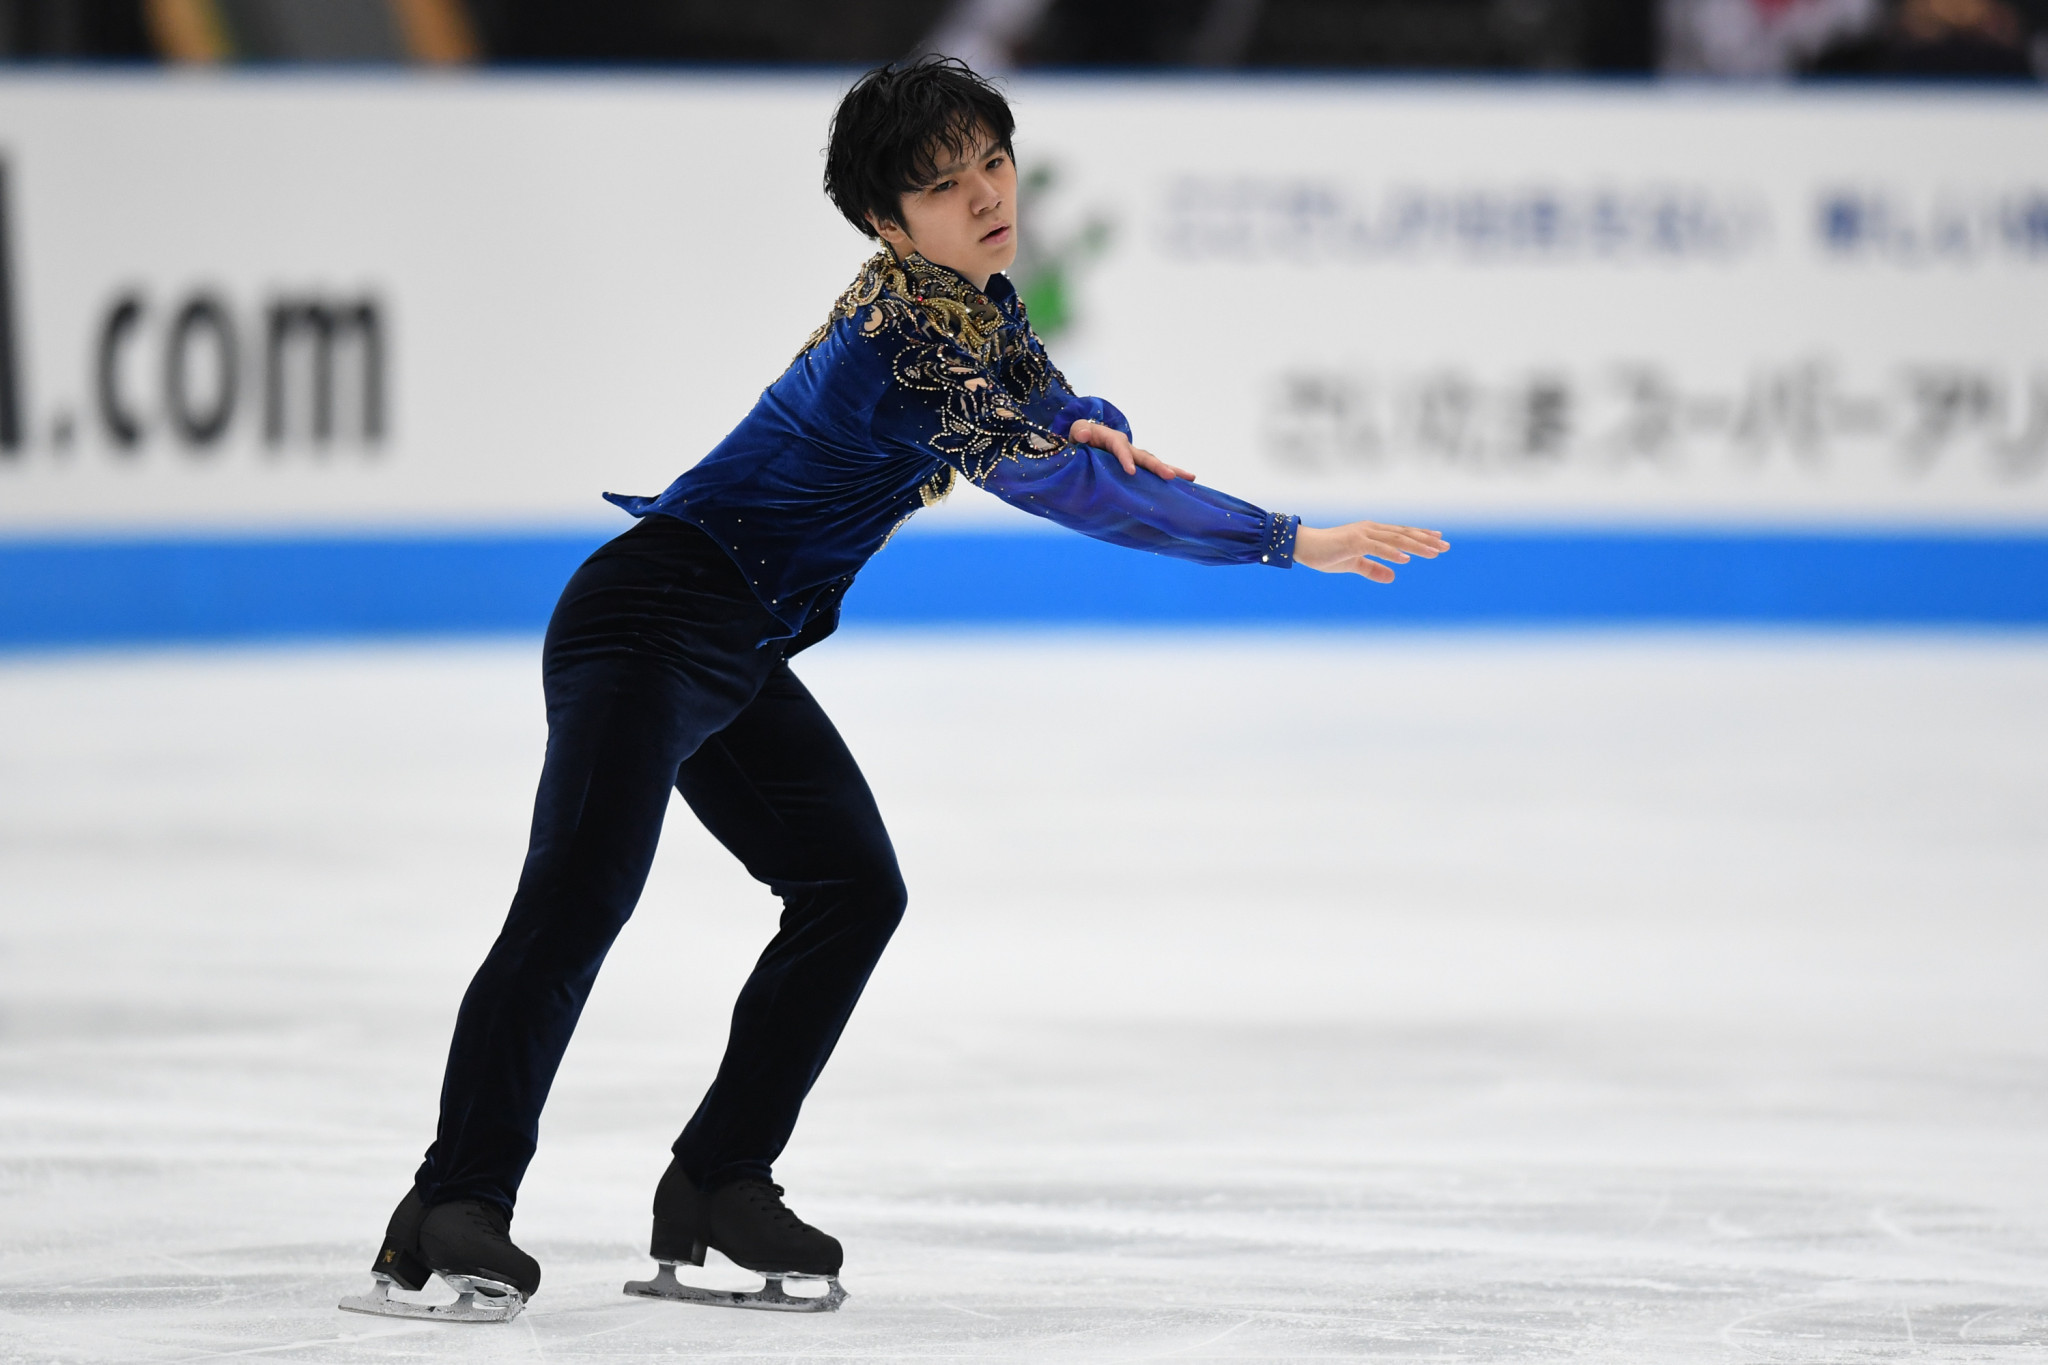 World silver medallist Shoma Uno is also set to compete at Skate Canada International ©Getty Images